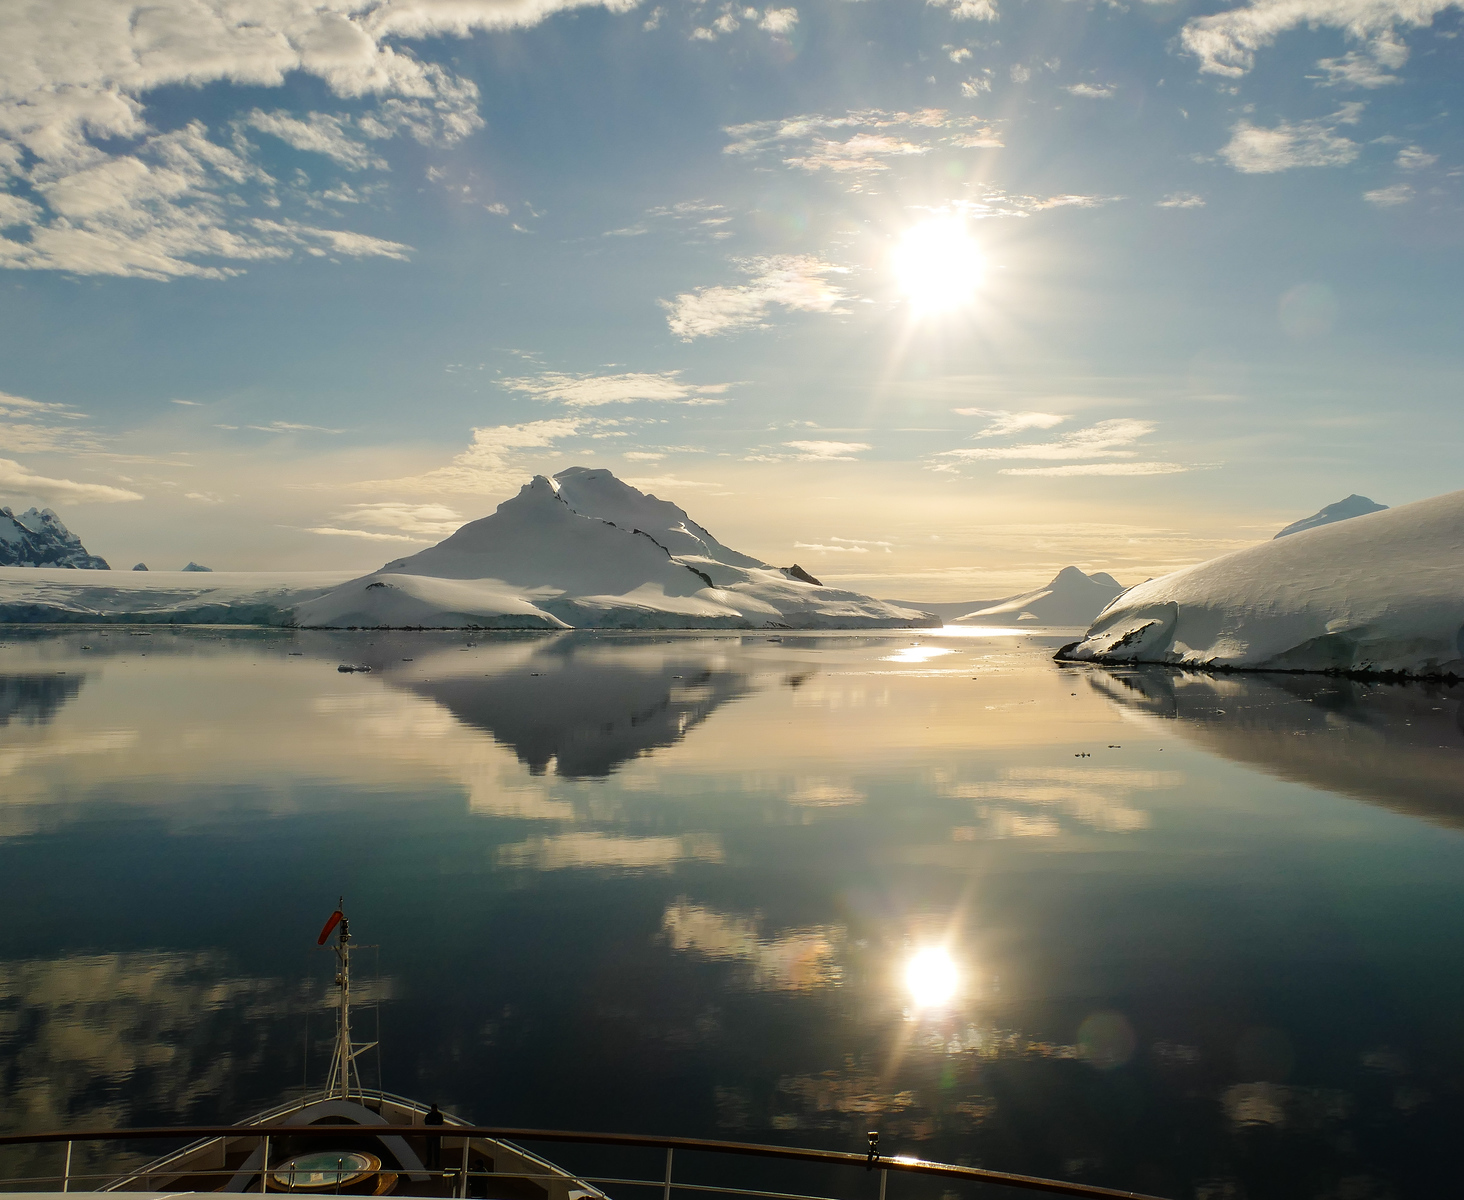 Sunlight reflects on the waters of Neumayer Channel. It's a beautiful Antarctica travel experience.